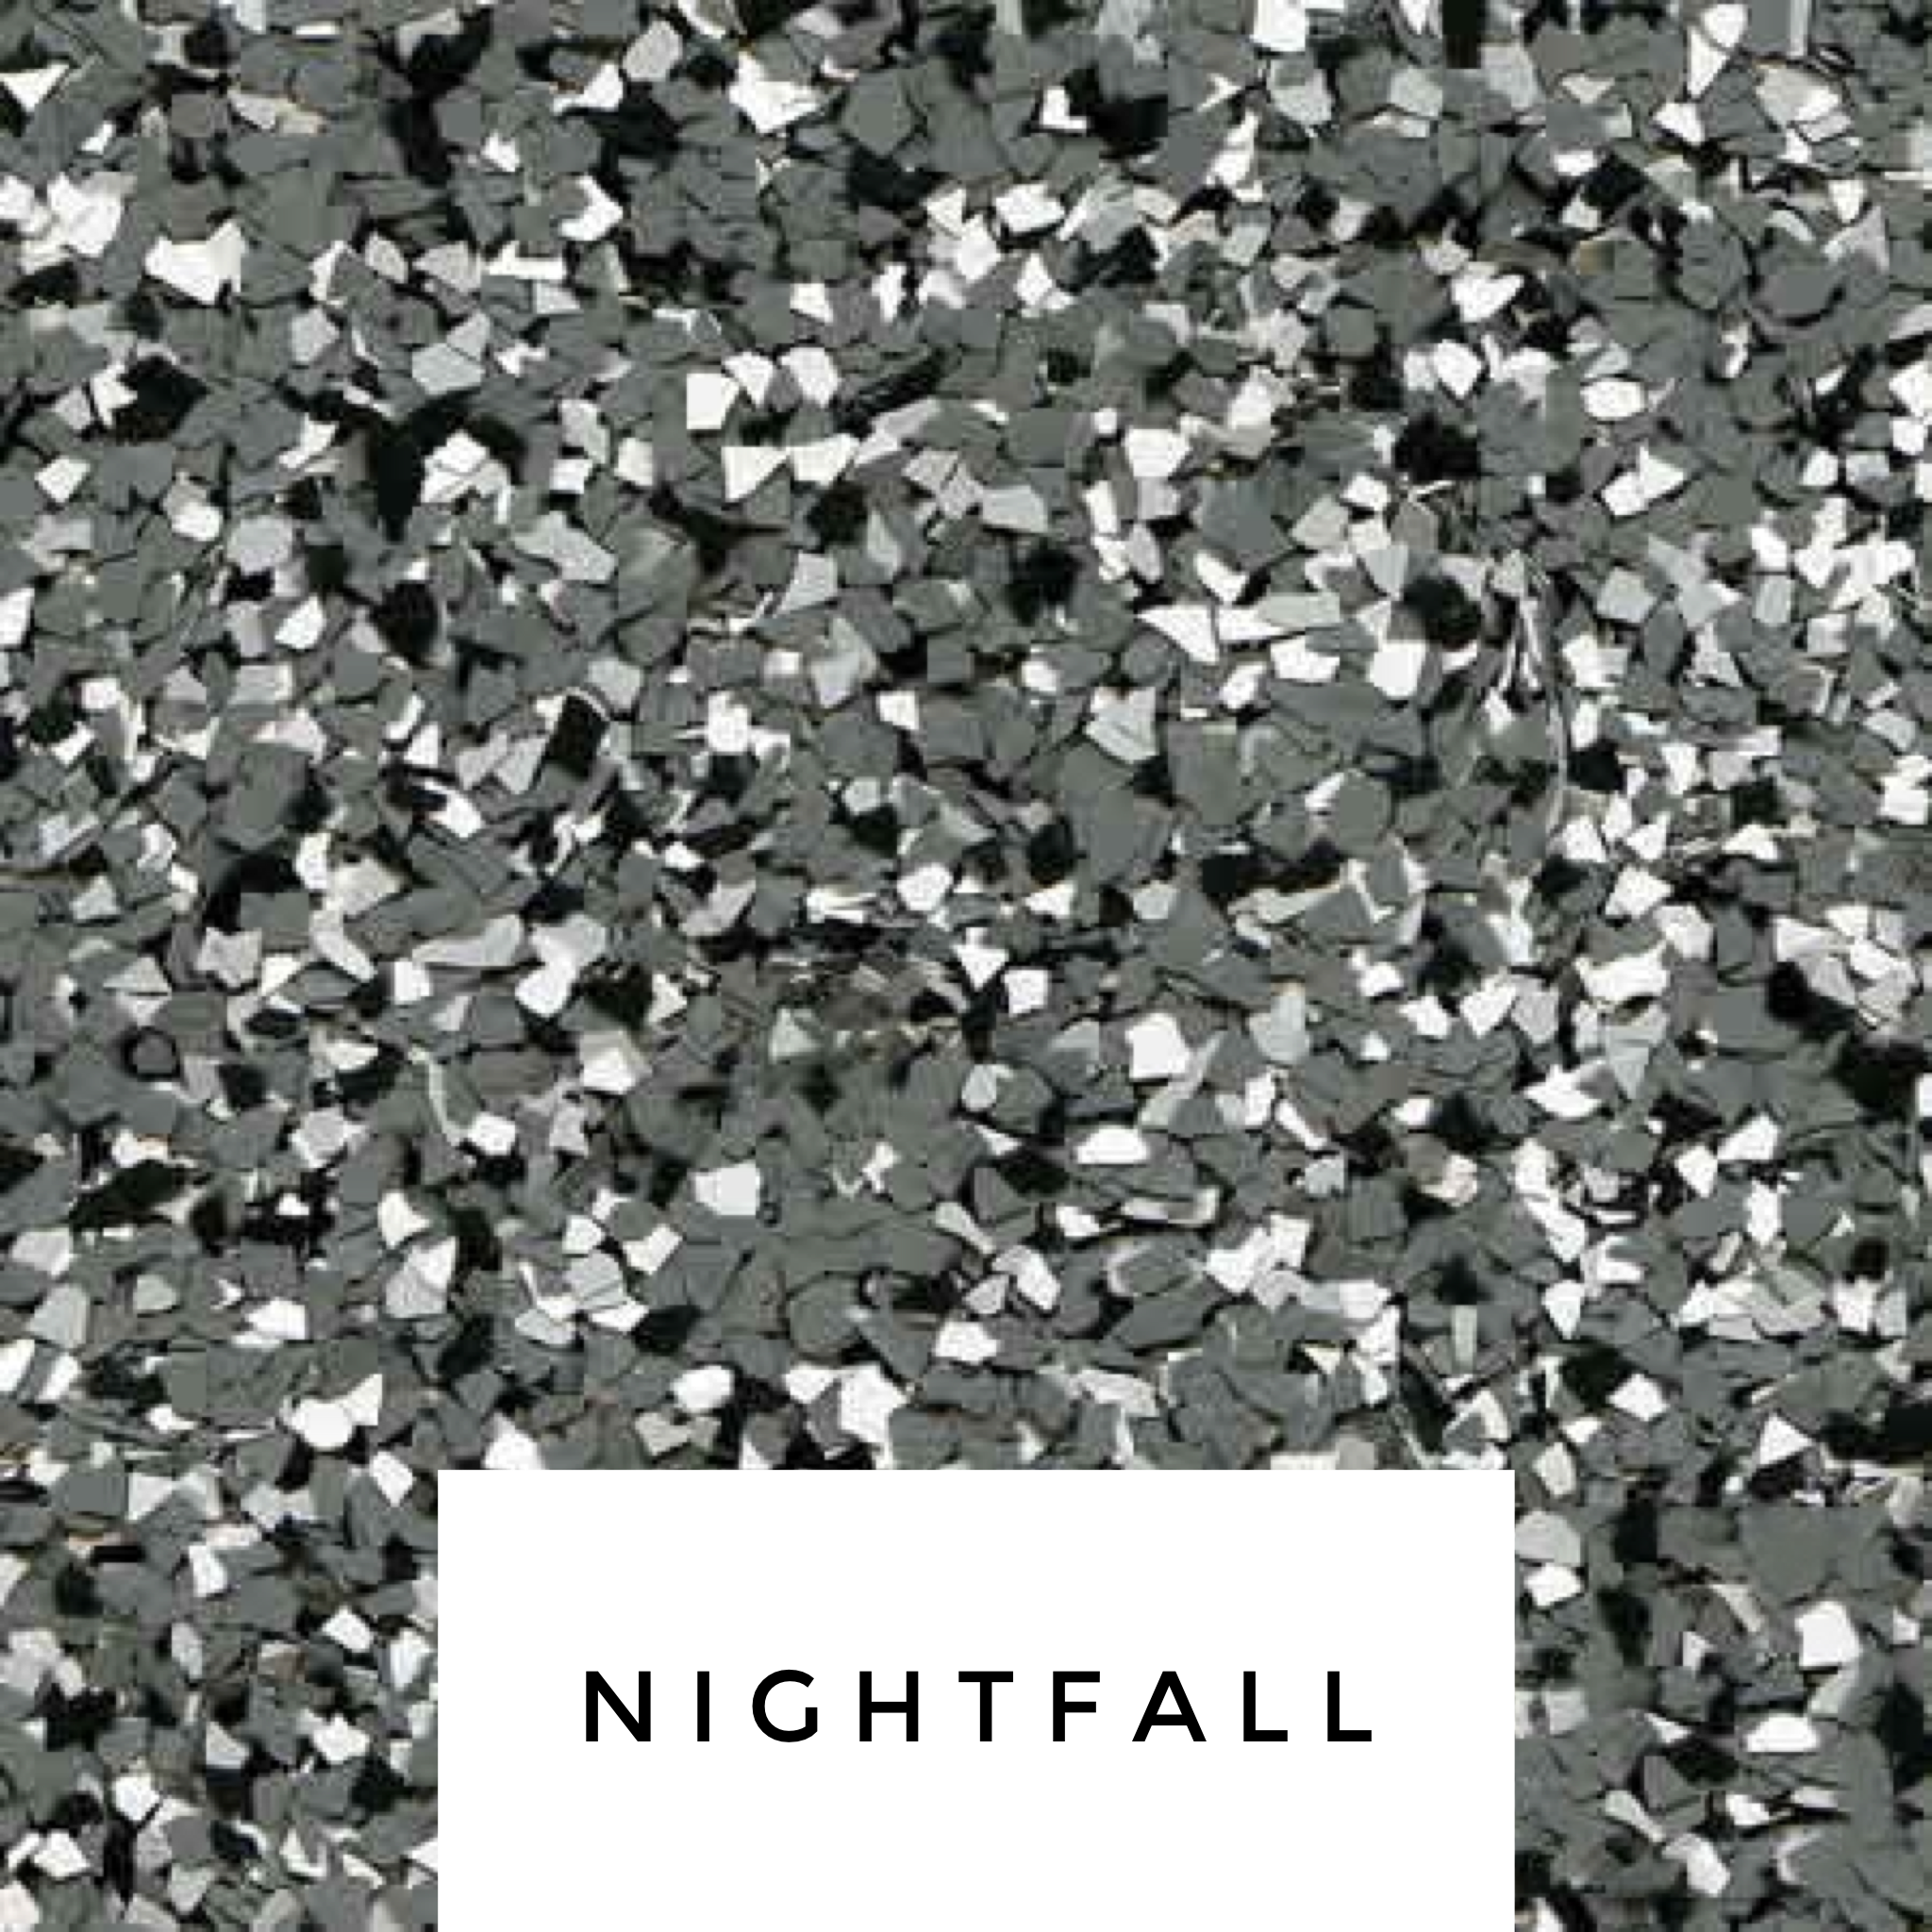 Nightfall Flake Blend - For those that like the darker look.- light grey, medium grays, black